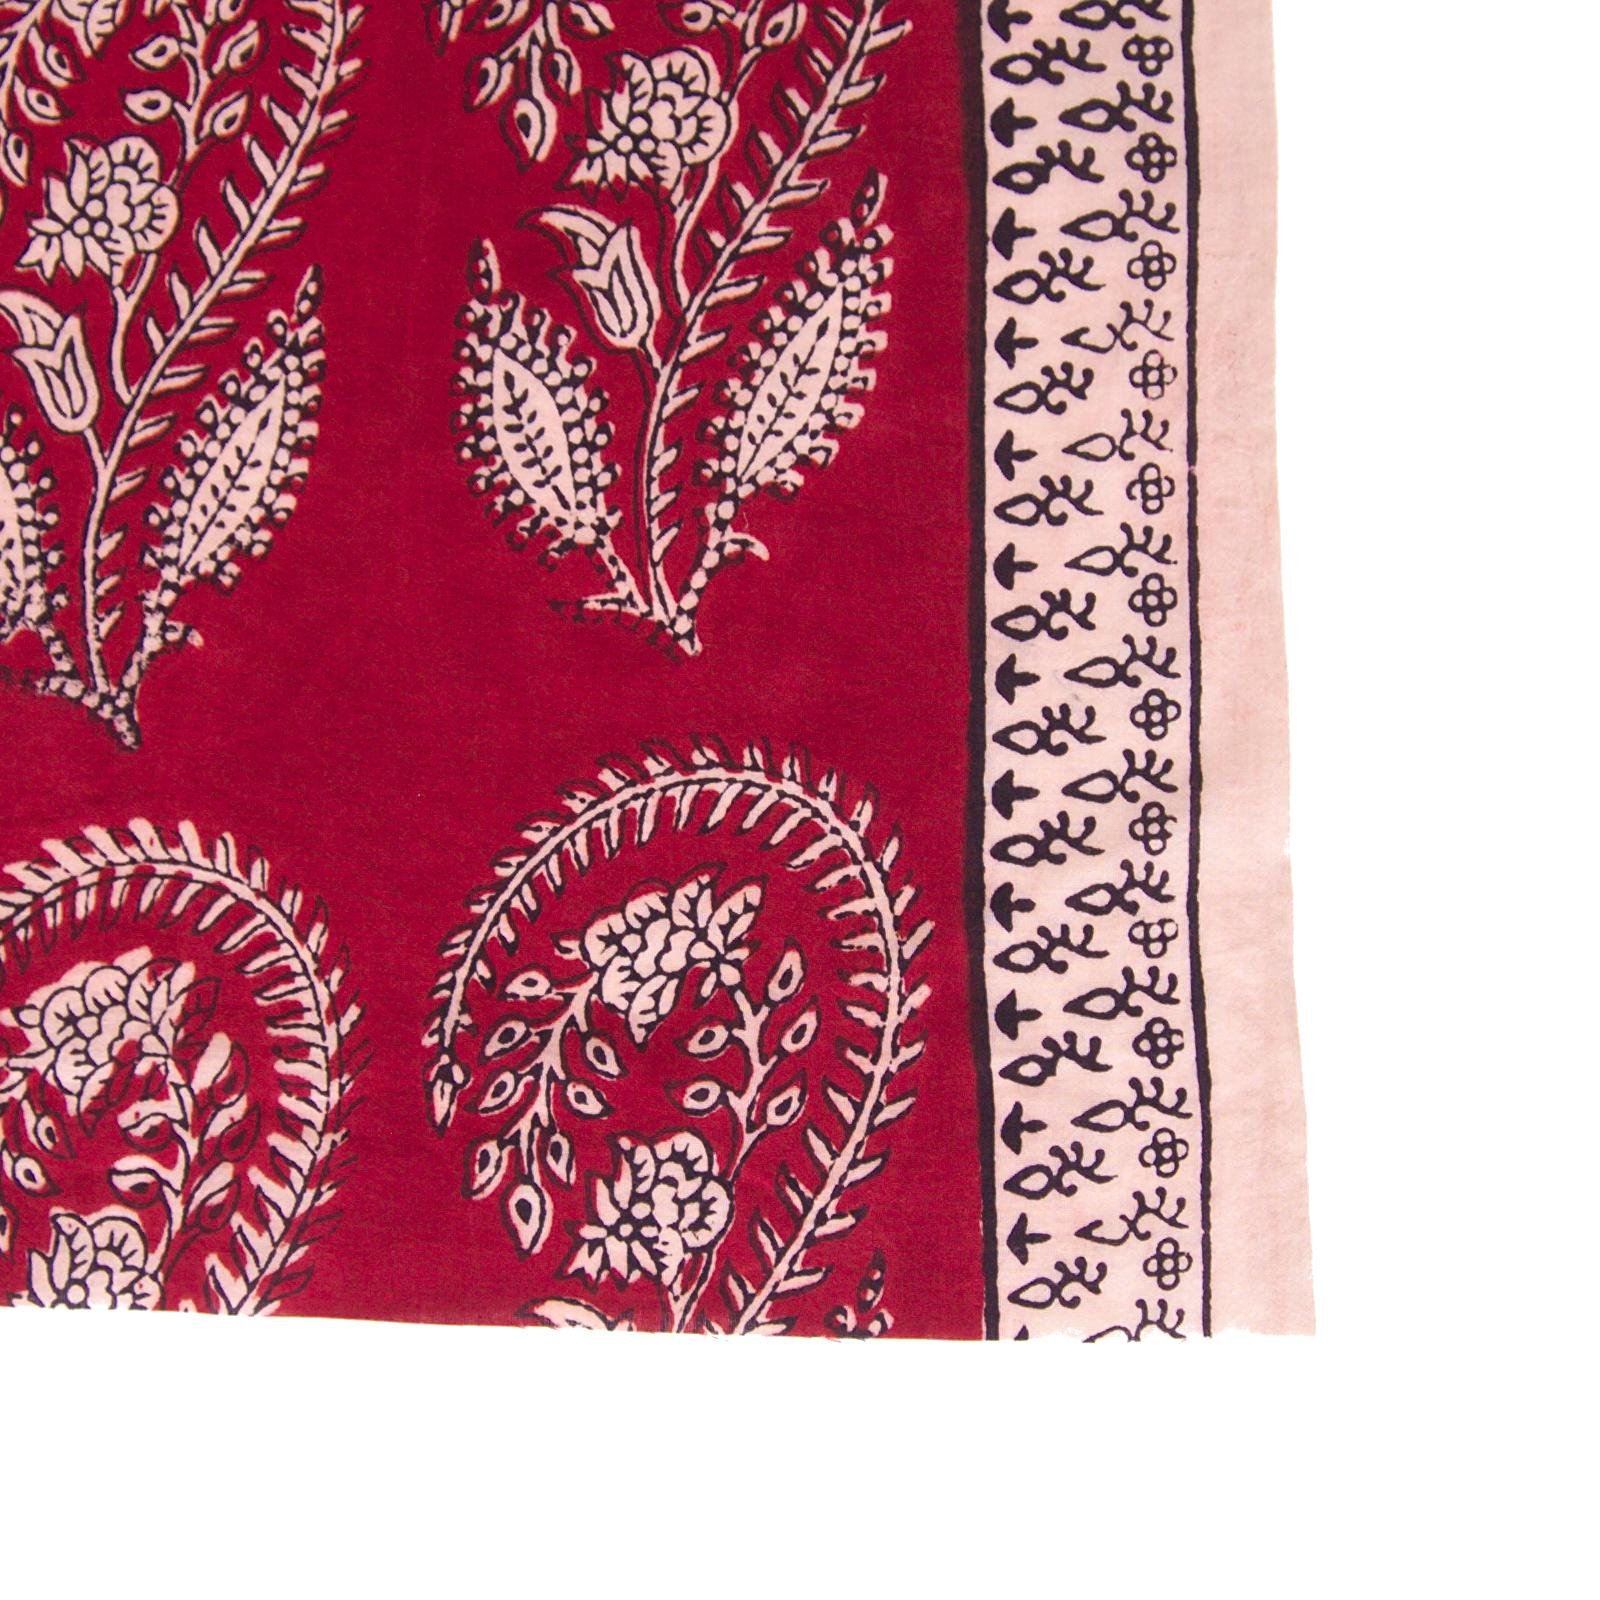 100% Block - Printed Cotton Fabric From India - Scorpion Design - Iron Rust Black & Alizarin Red Dyes - Border - Live